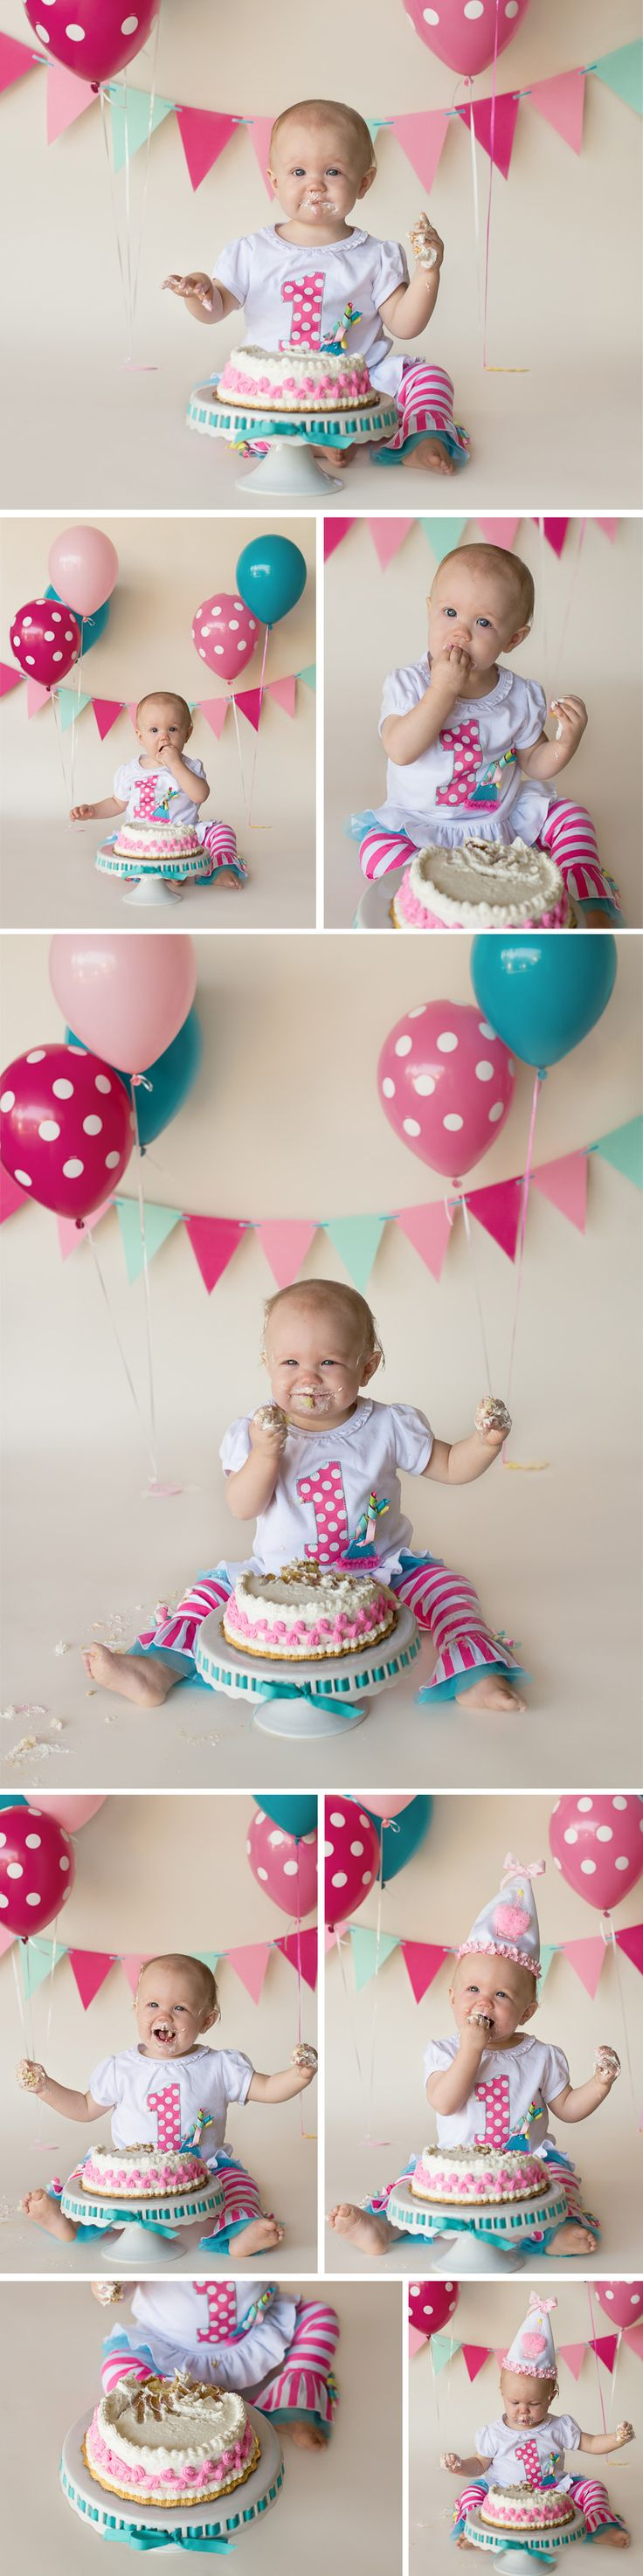 Tampa Family Photographer Sherri Kelly - Baby Girl First Birthday Cake Smash Photo Session